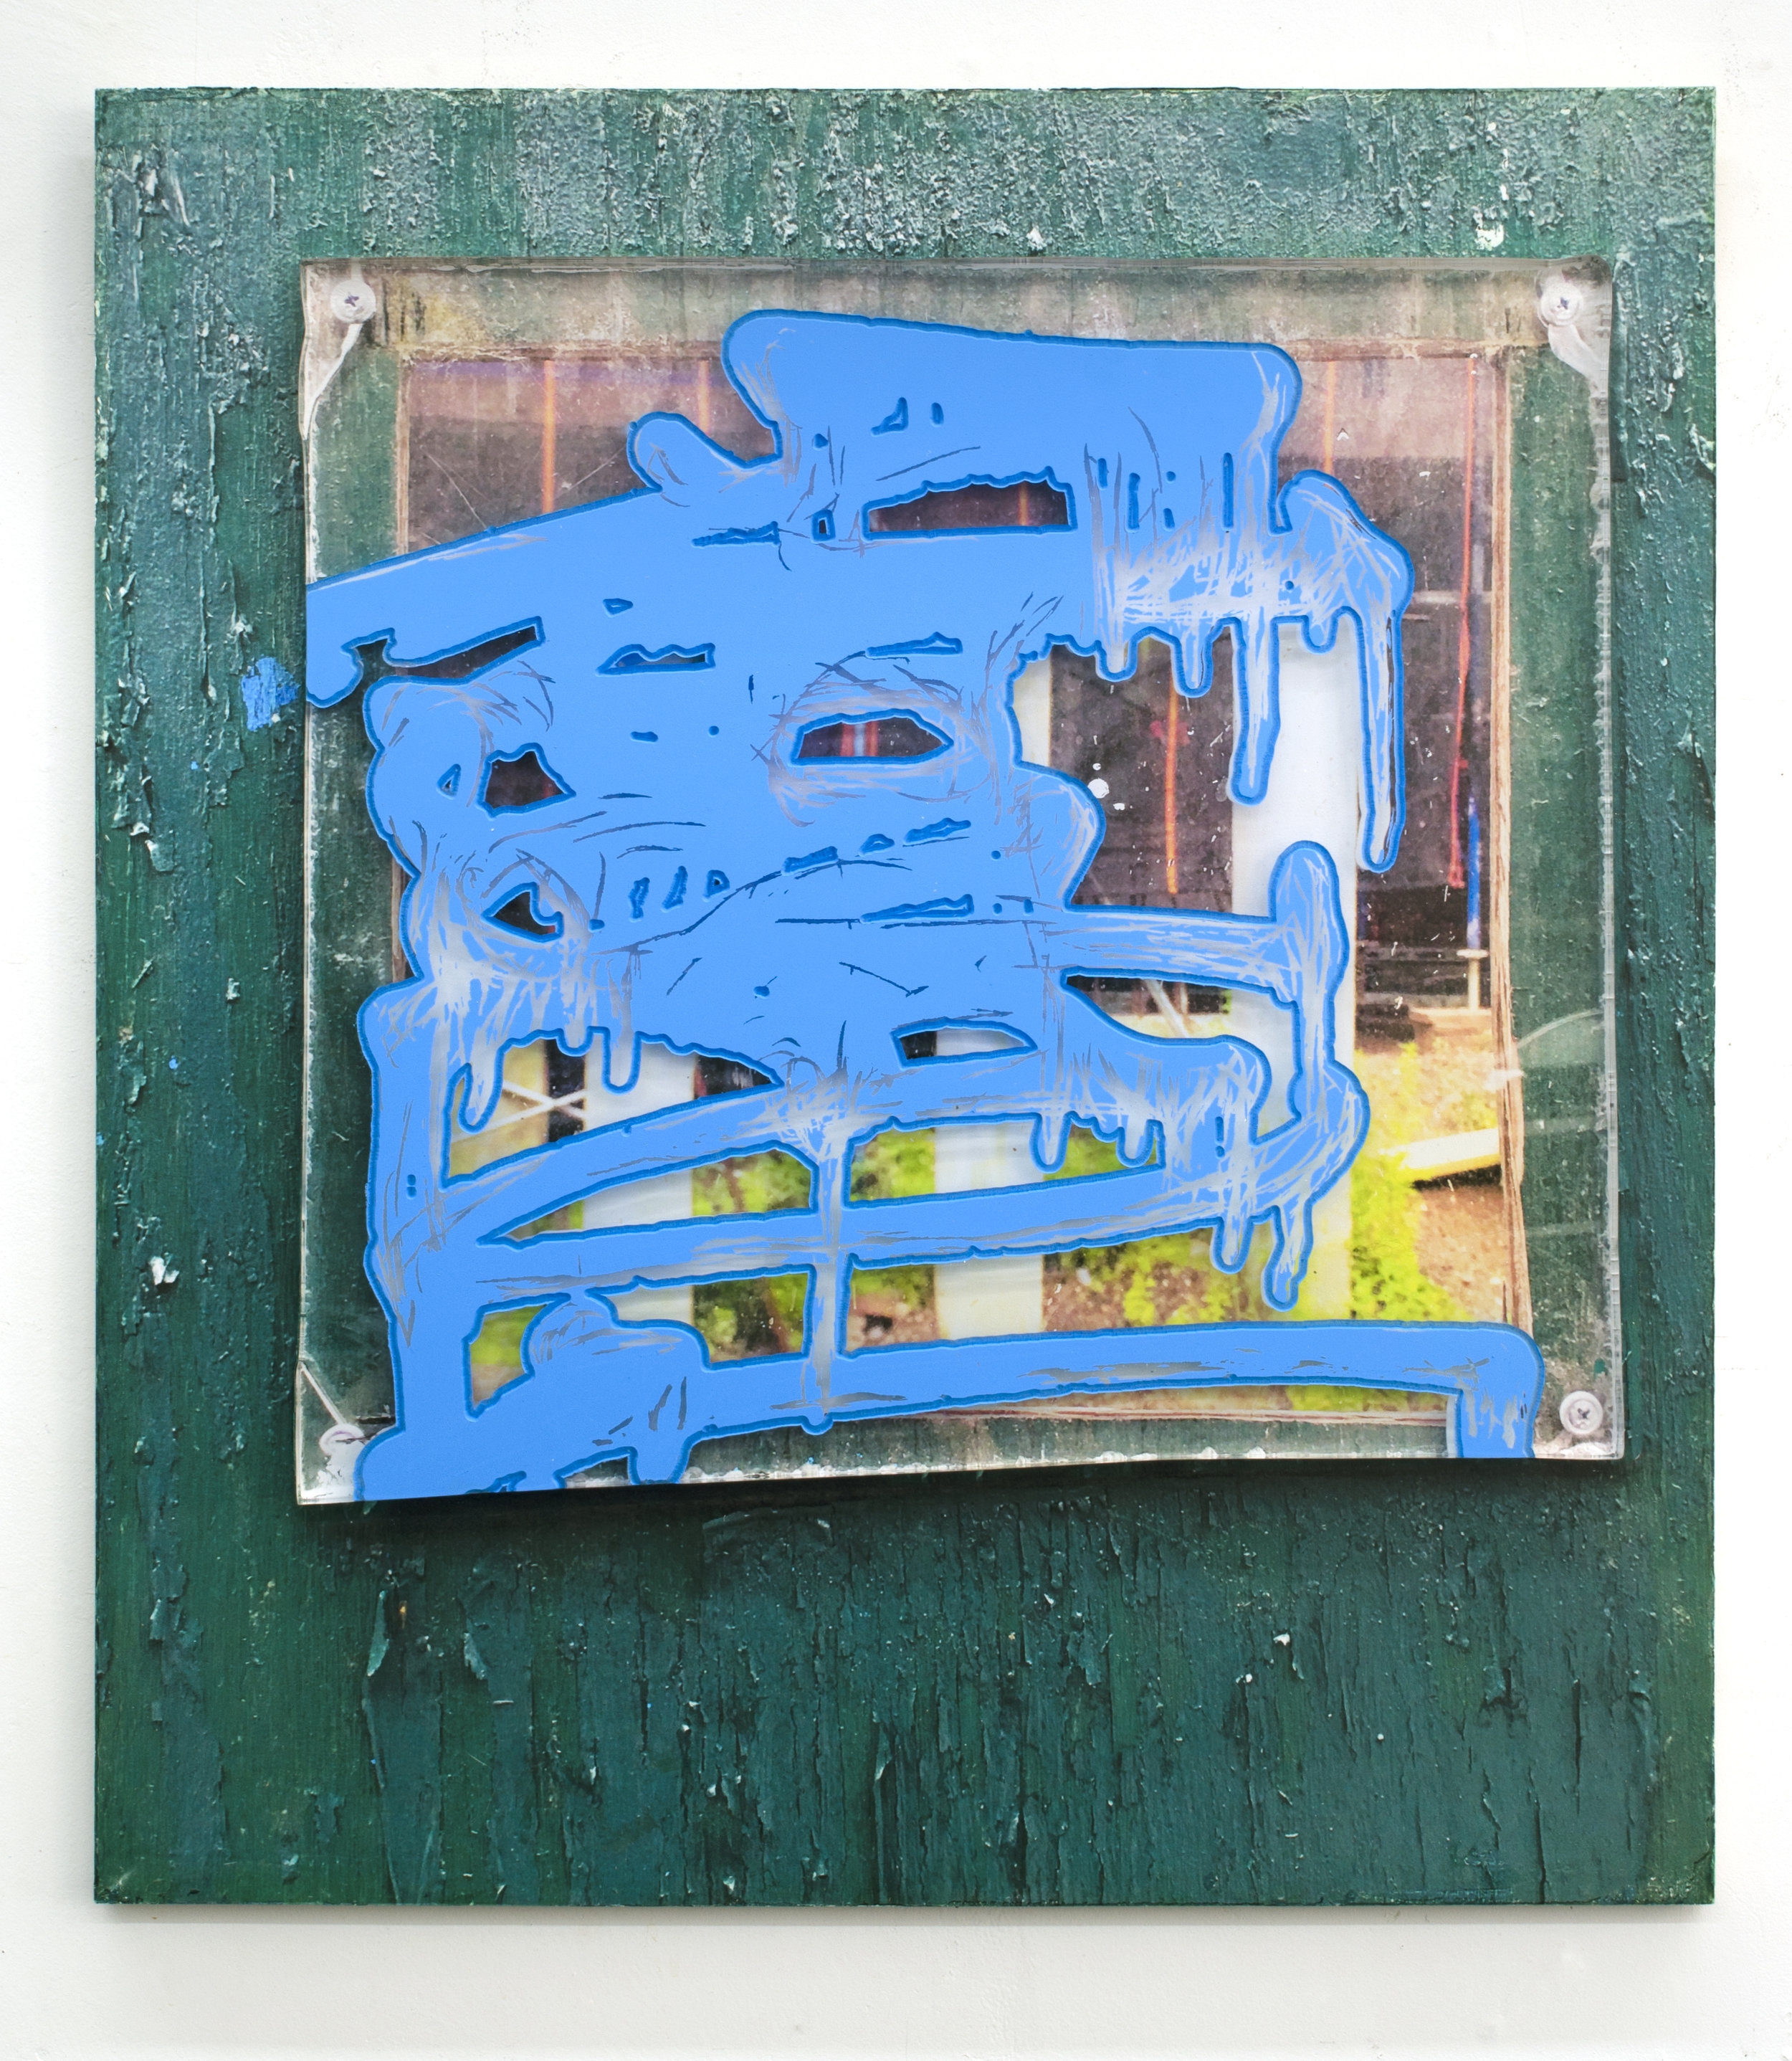 Ethan Greenbaum  Shading , 2019 Acrylic, pigment transfer on acrylic and carved birch 32 x 24 inches (81.28 x 60.96 cm)